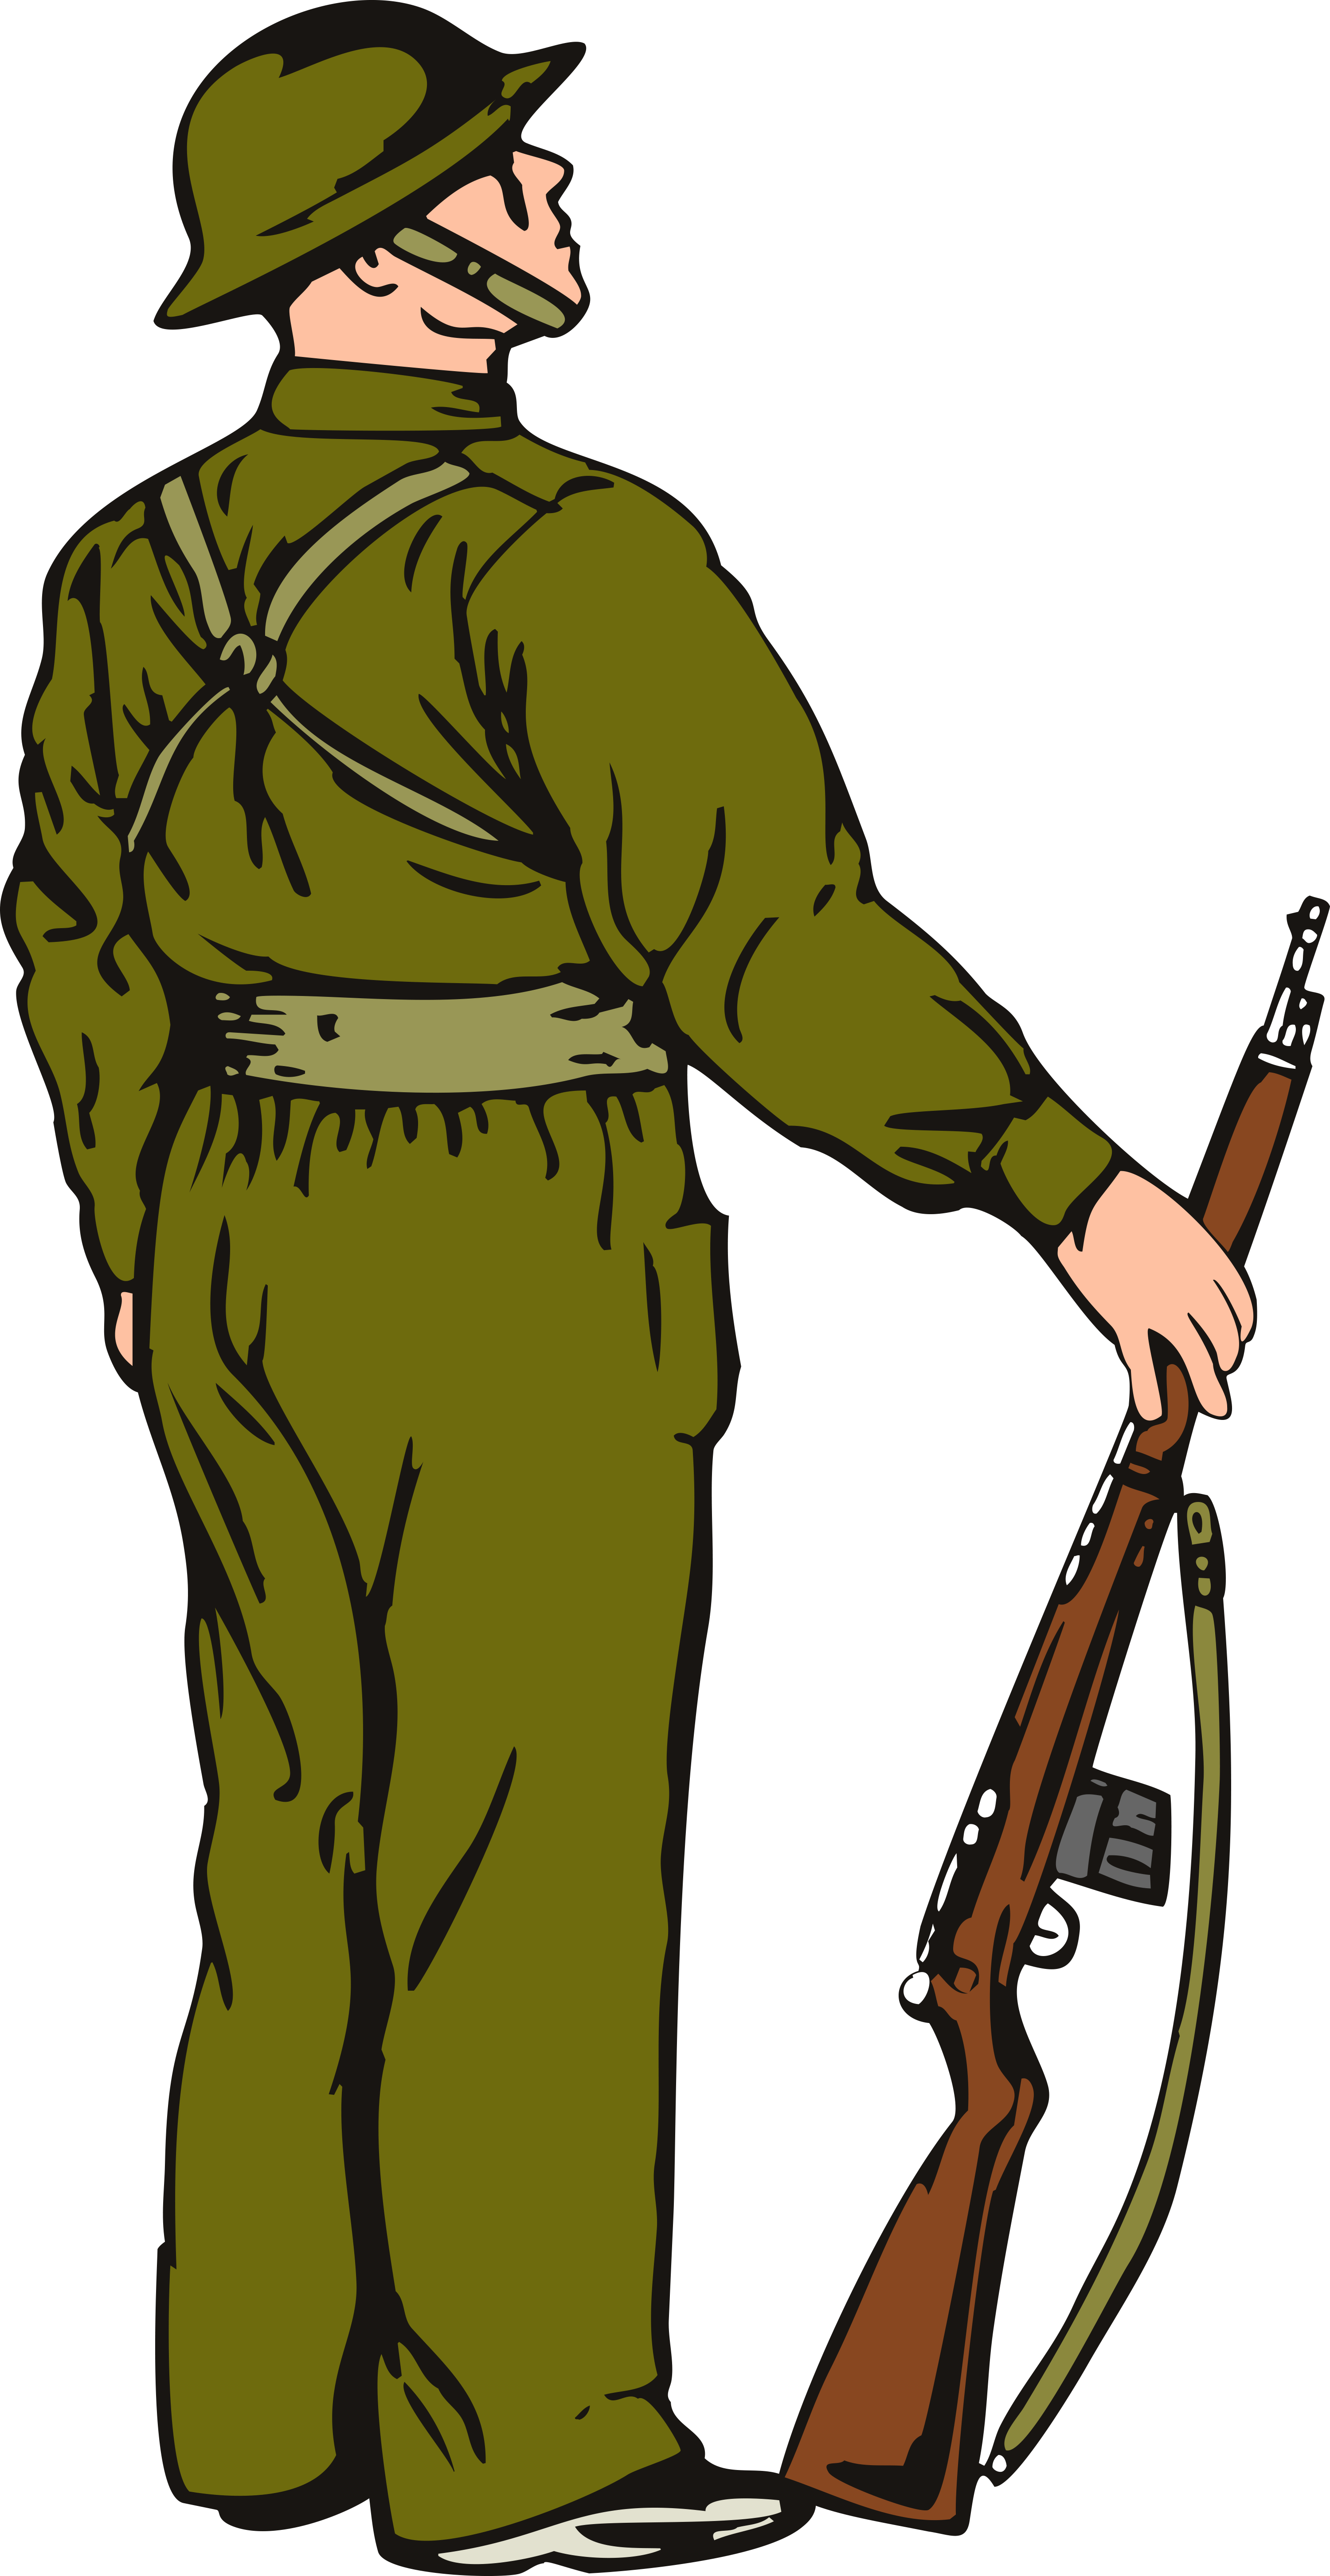 Veteran s day memorial. Clipart backpack soldier